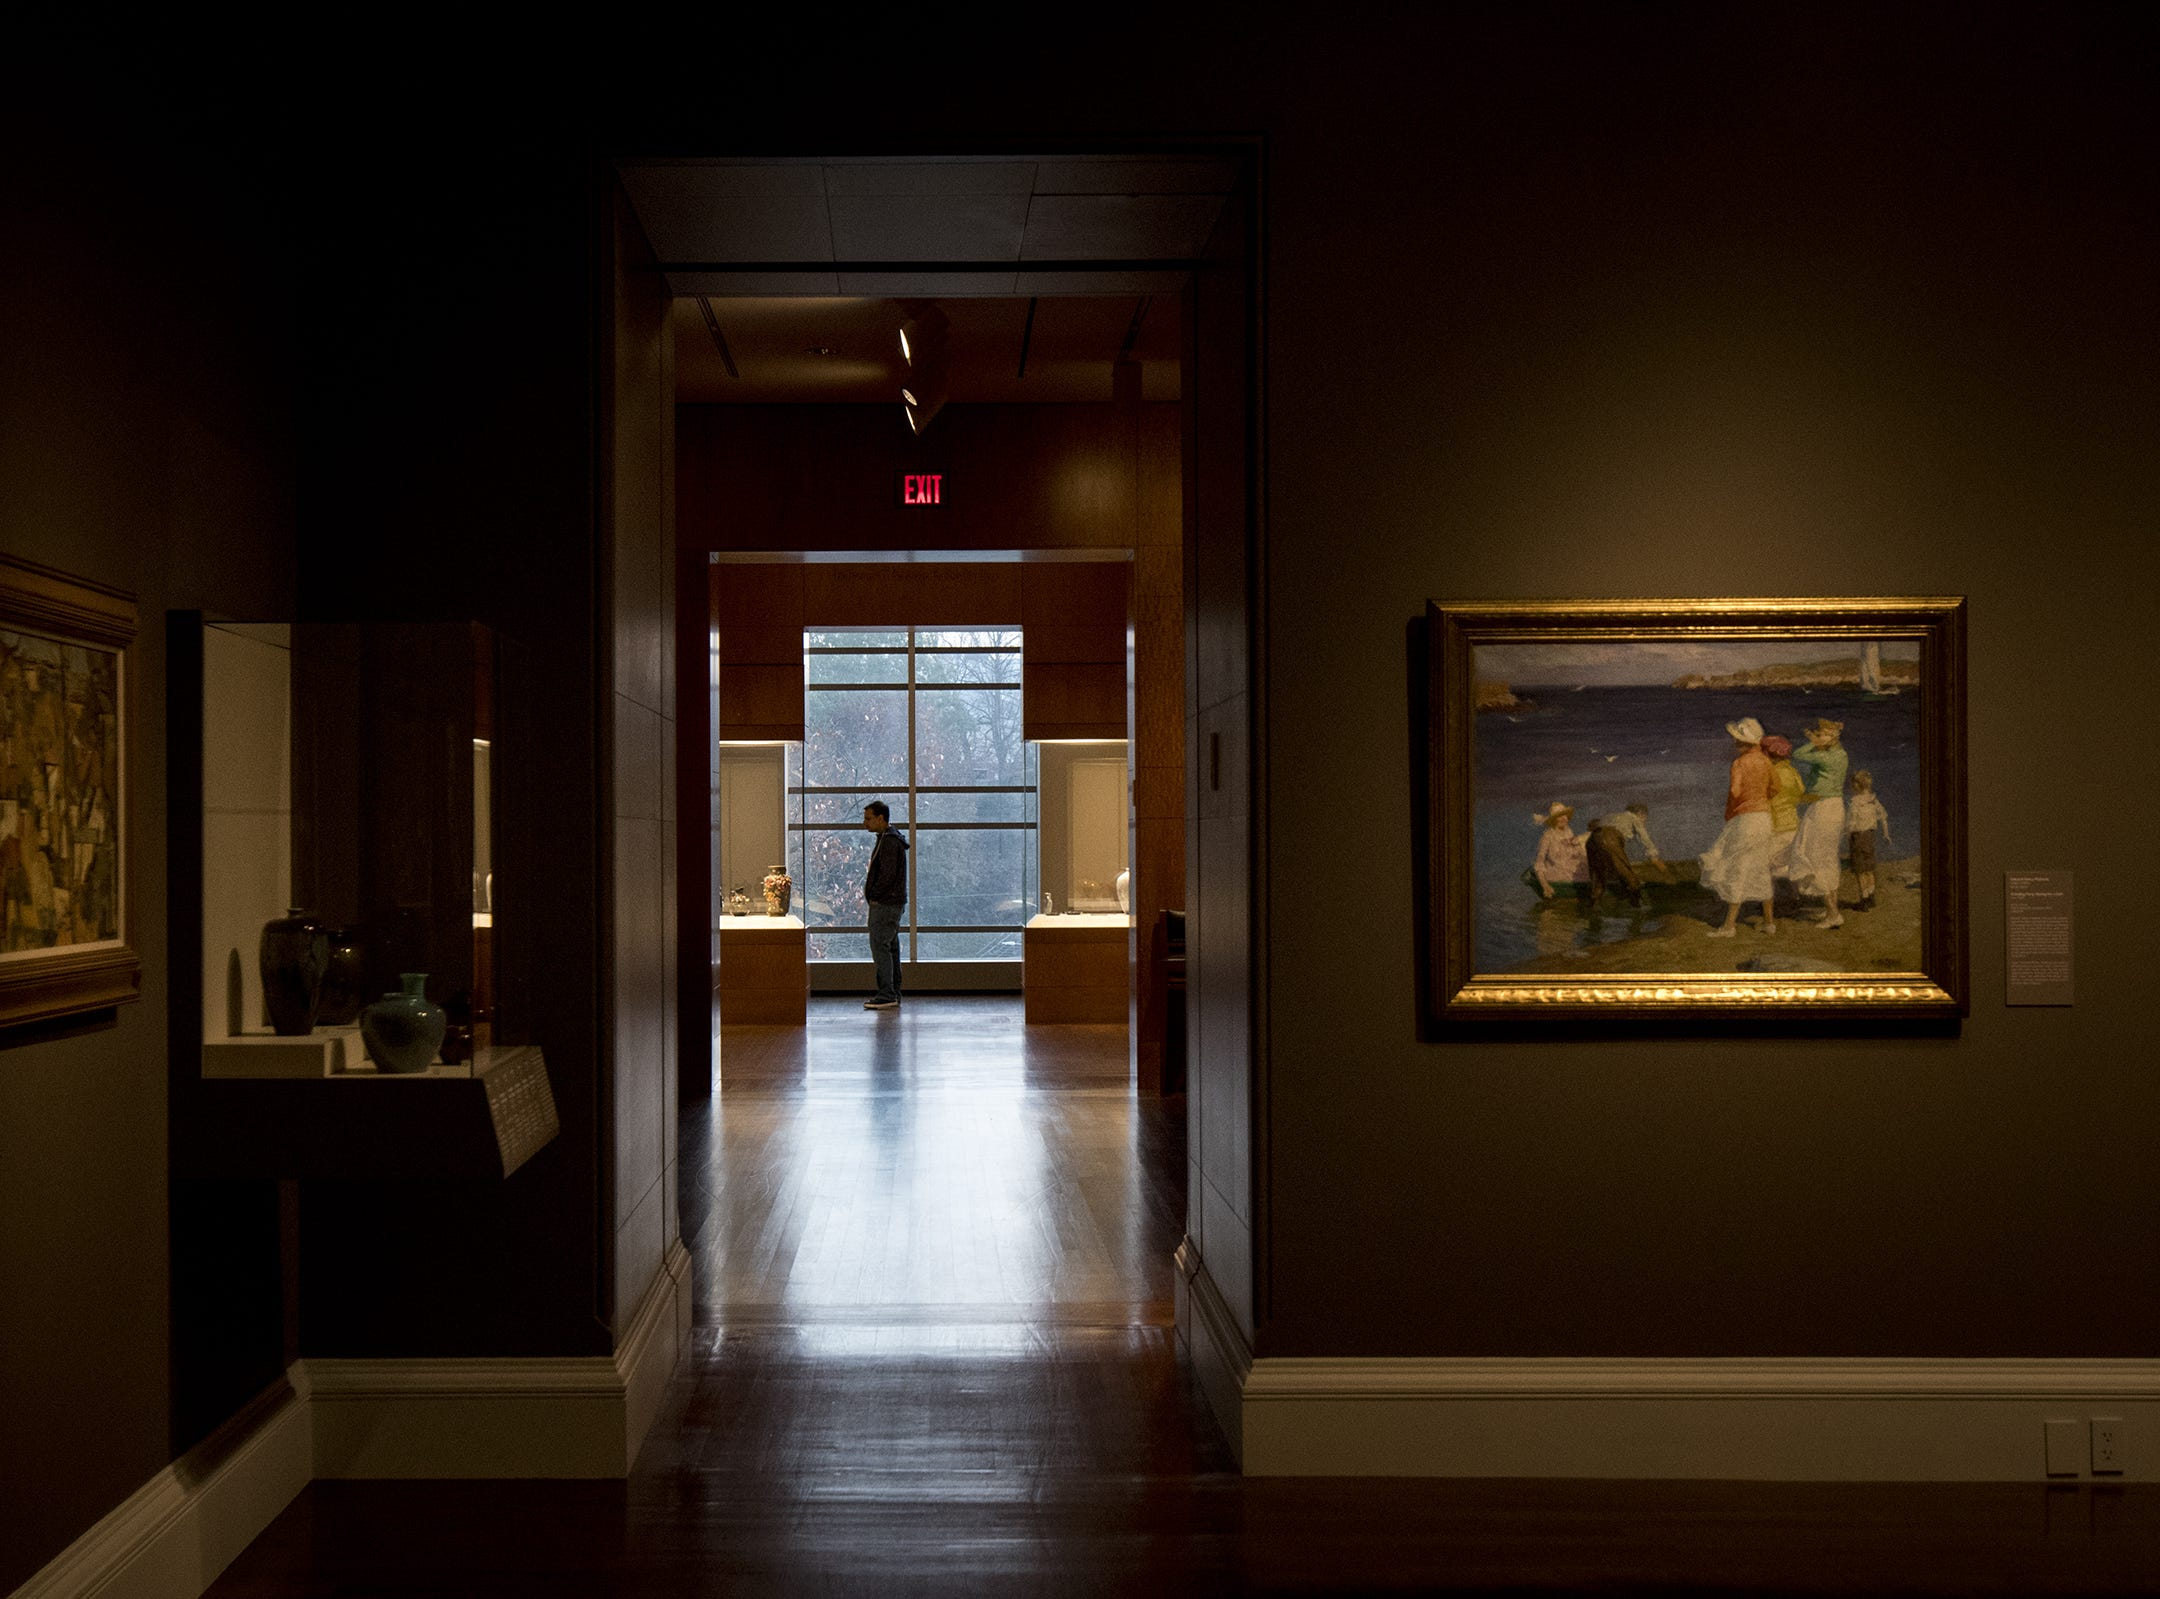 A guest checks out the collections at the Cincinnati Art Museum at the start of Art After Dark: Confess Yourself Wednesday, November 21, 2018 in Cincinnati, Ohio.